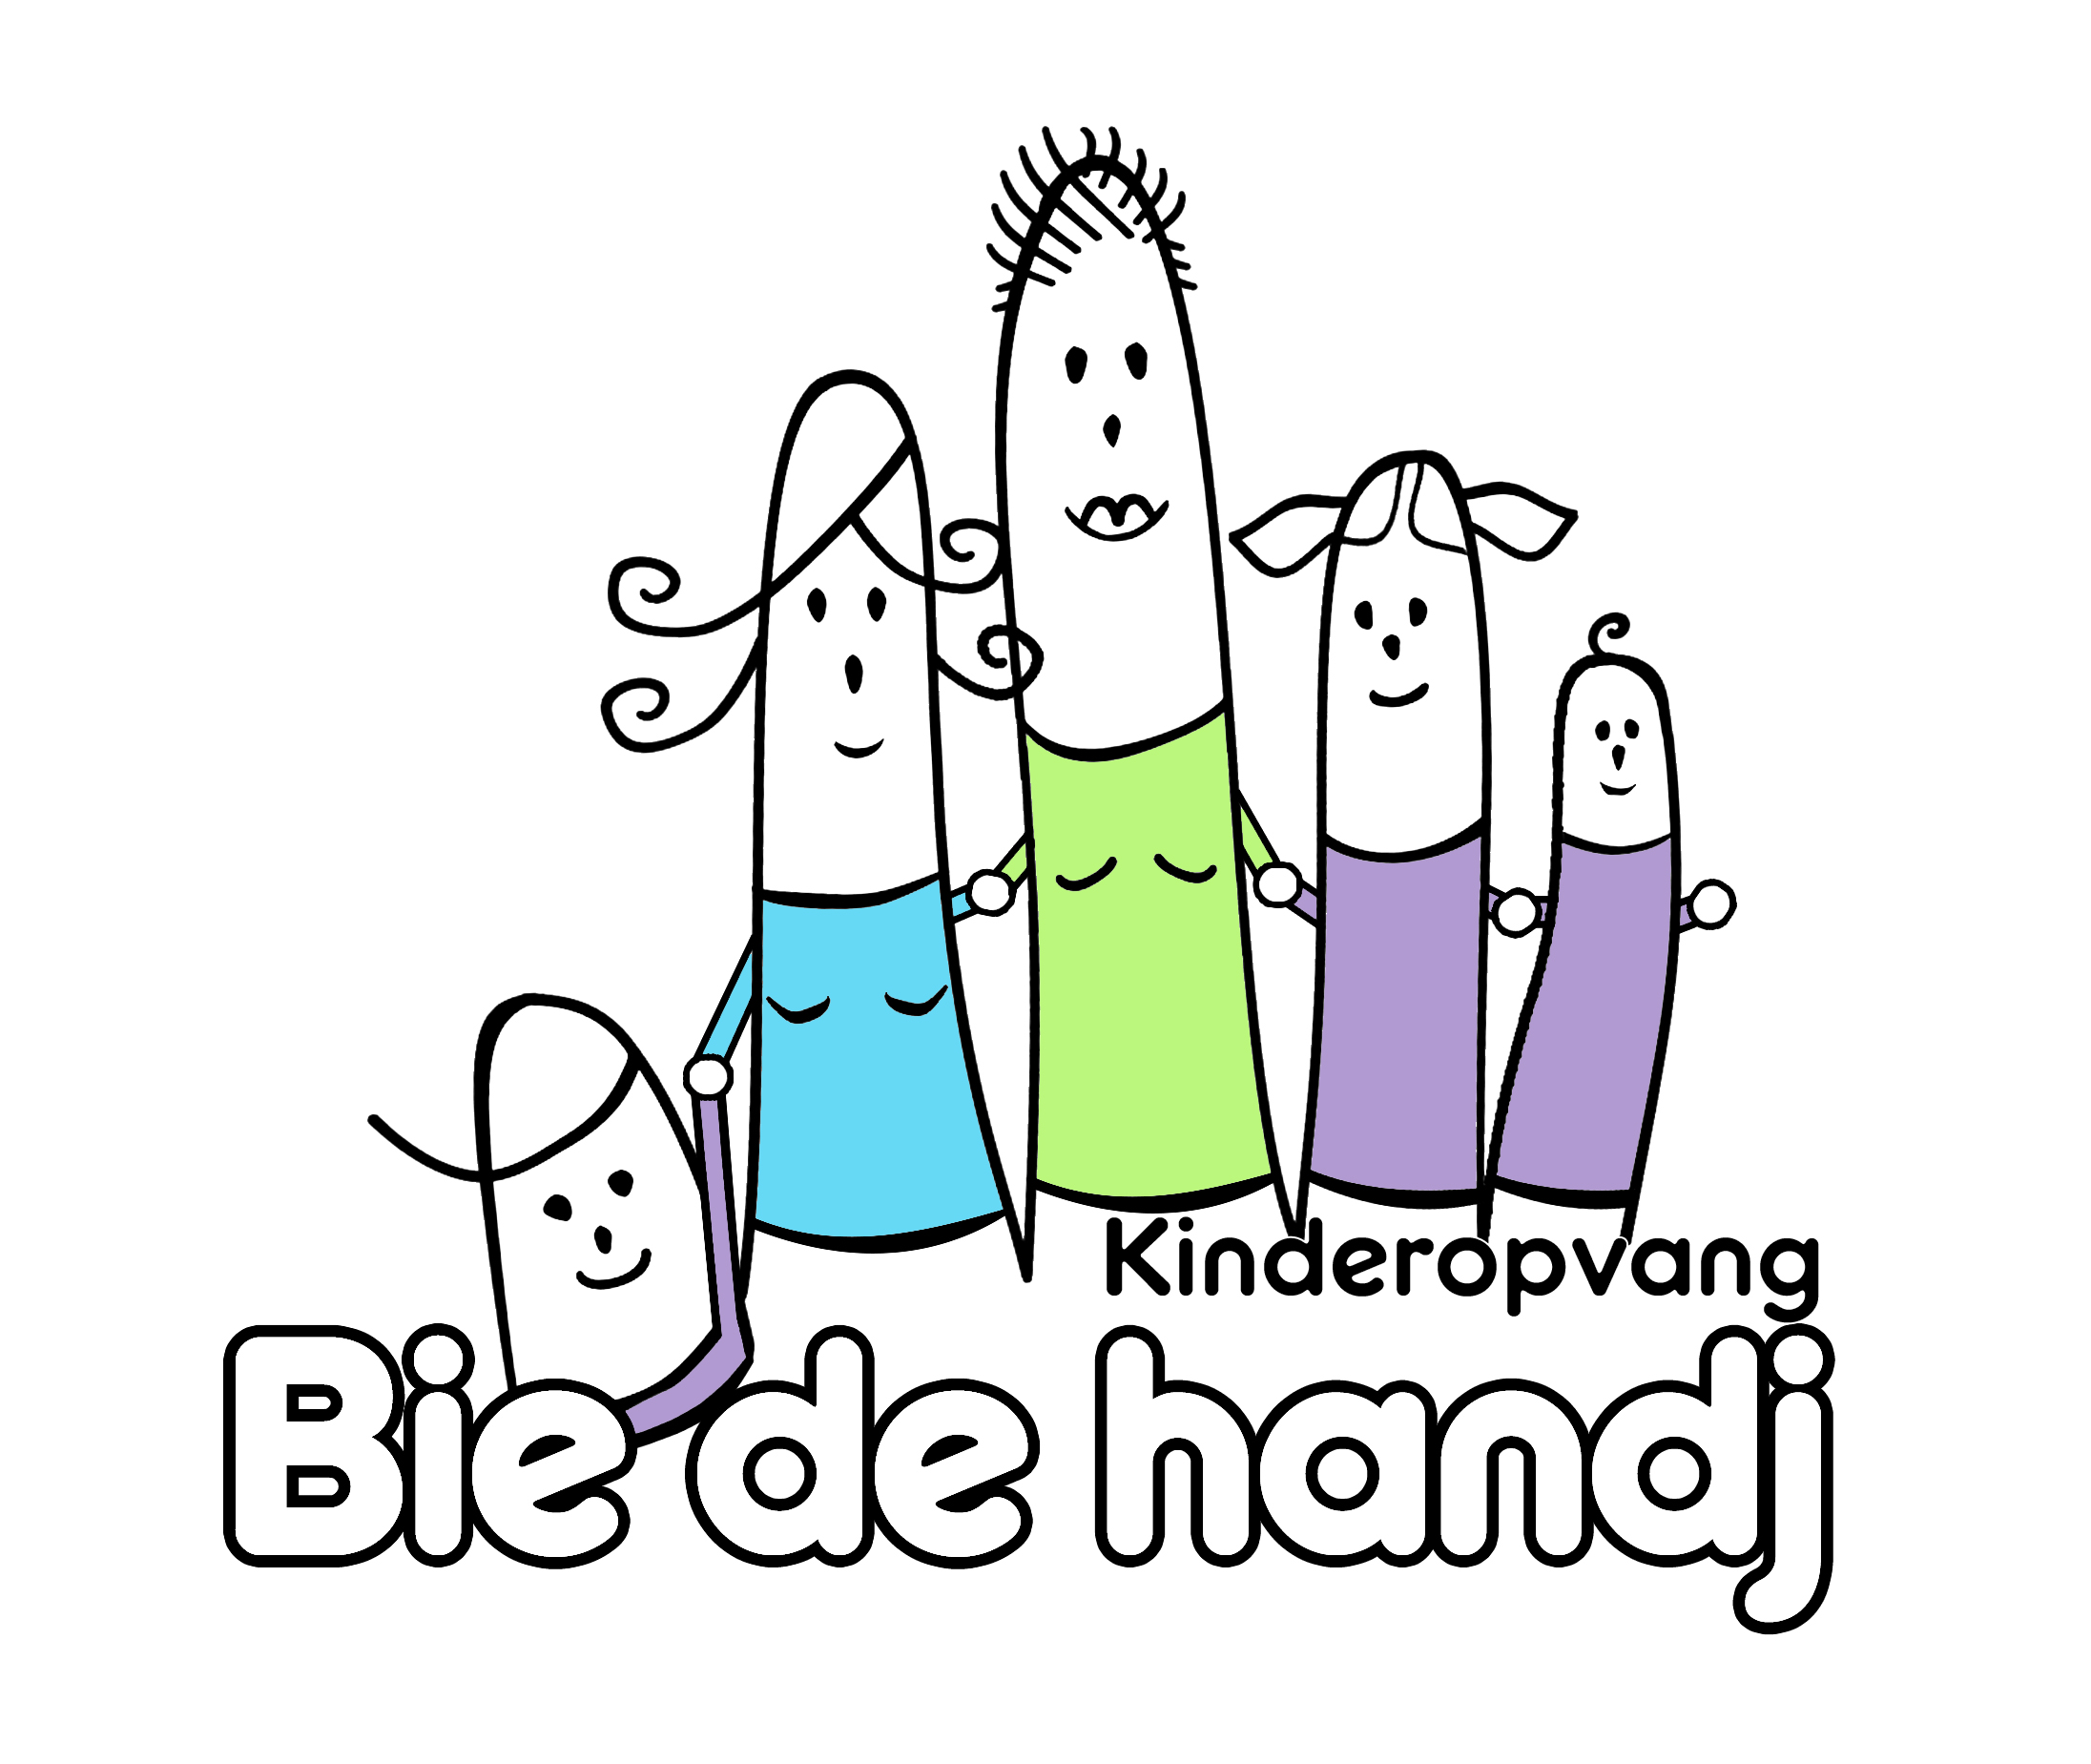 cropped-BiedeHandjLogoKleur-website-copy.jpg